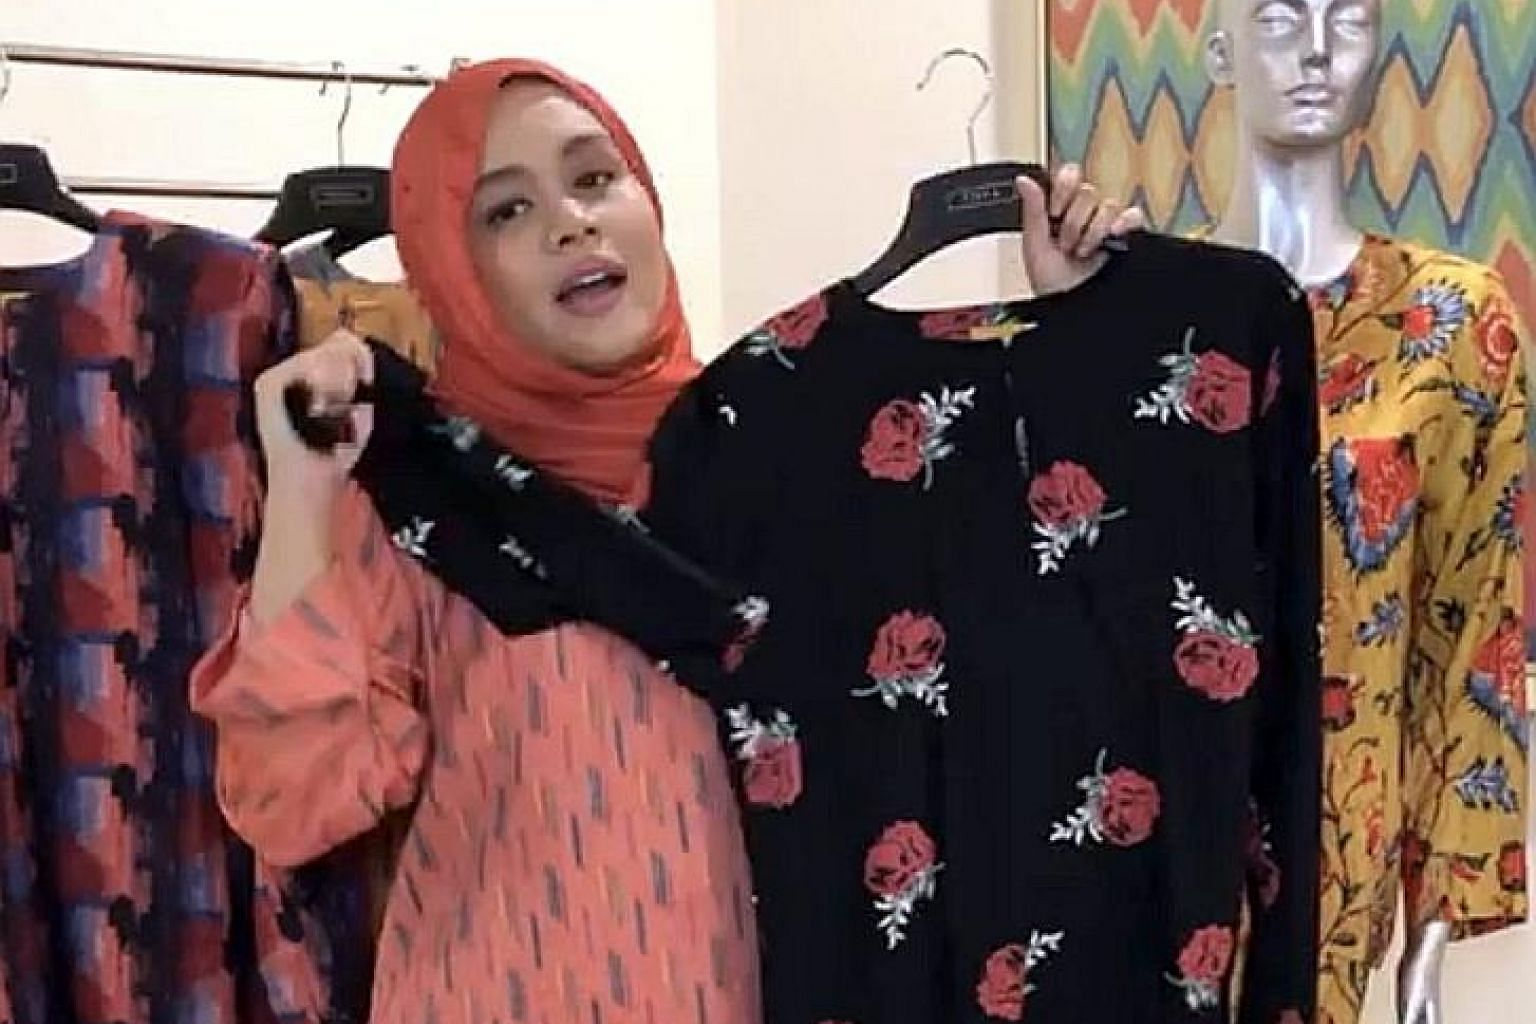 Madam Adilah Khairudin, owner of traditional Malay clothing shop Poya Boutique, found that after going online, she started getting customers from different parts of Malaysia, whereas her physical store of more than 20 years attracted mostly customers